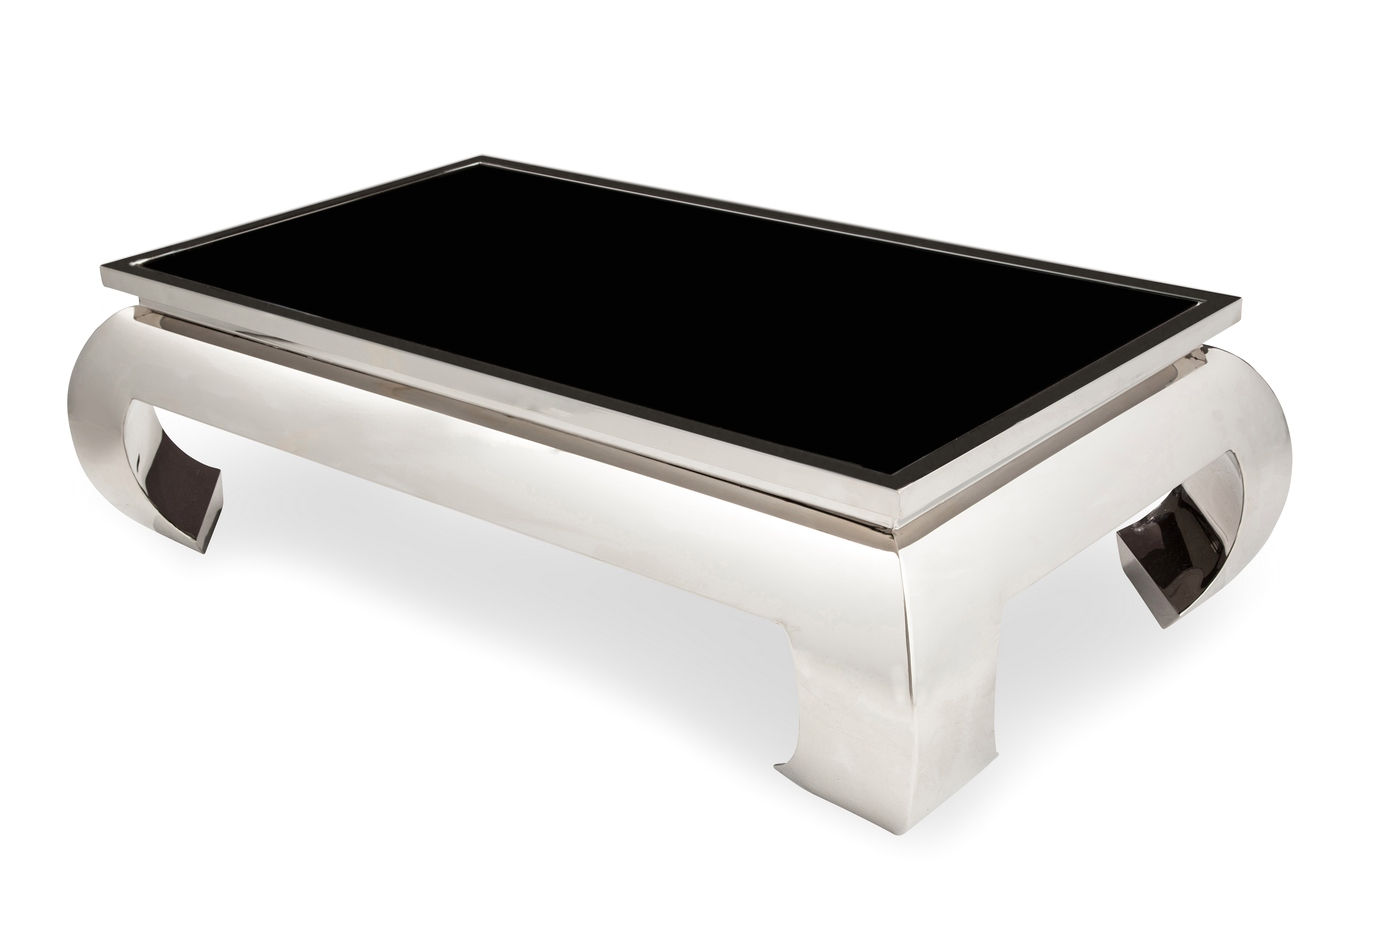 Pietro Ultra Modern Coffee Table With Glass Top And Silver Finish